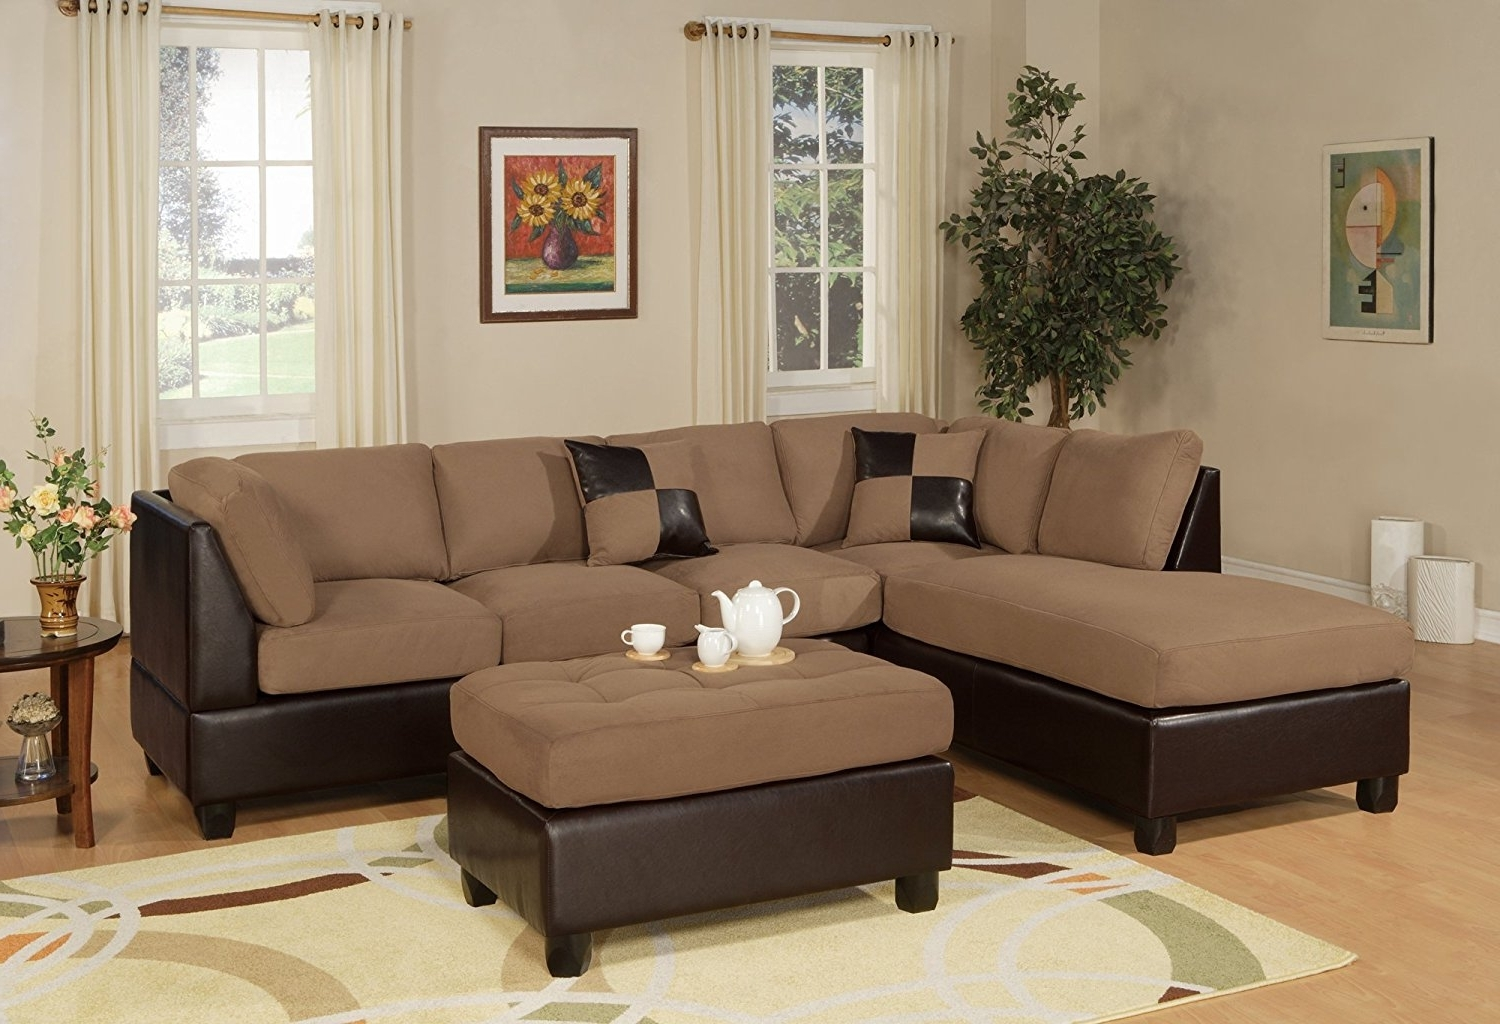 Leather And Suede Sectional Sofas For Current Amazon: Bobkona Hungtinton Microfiber/faux Leather 3 Piece (View 6 of 15)